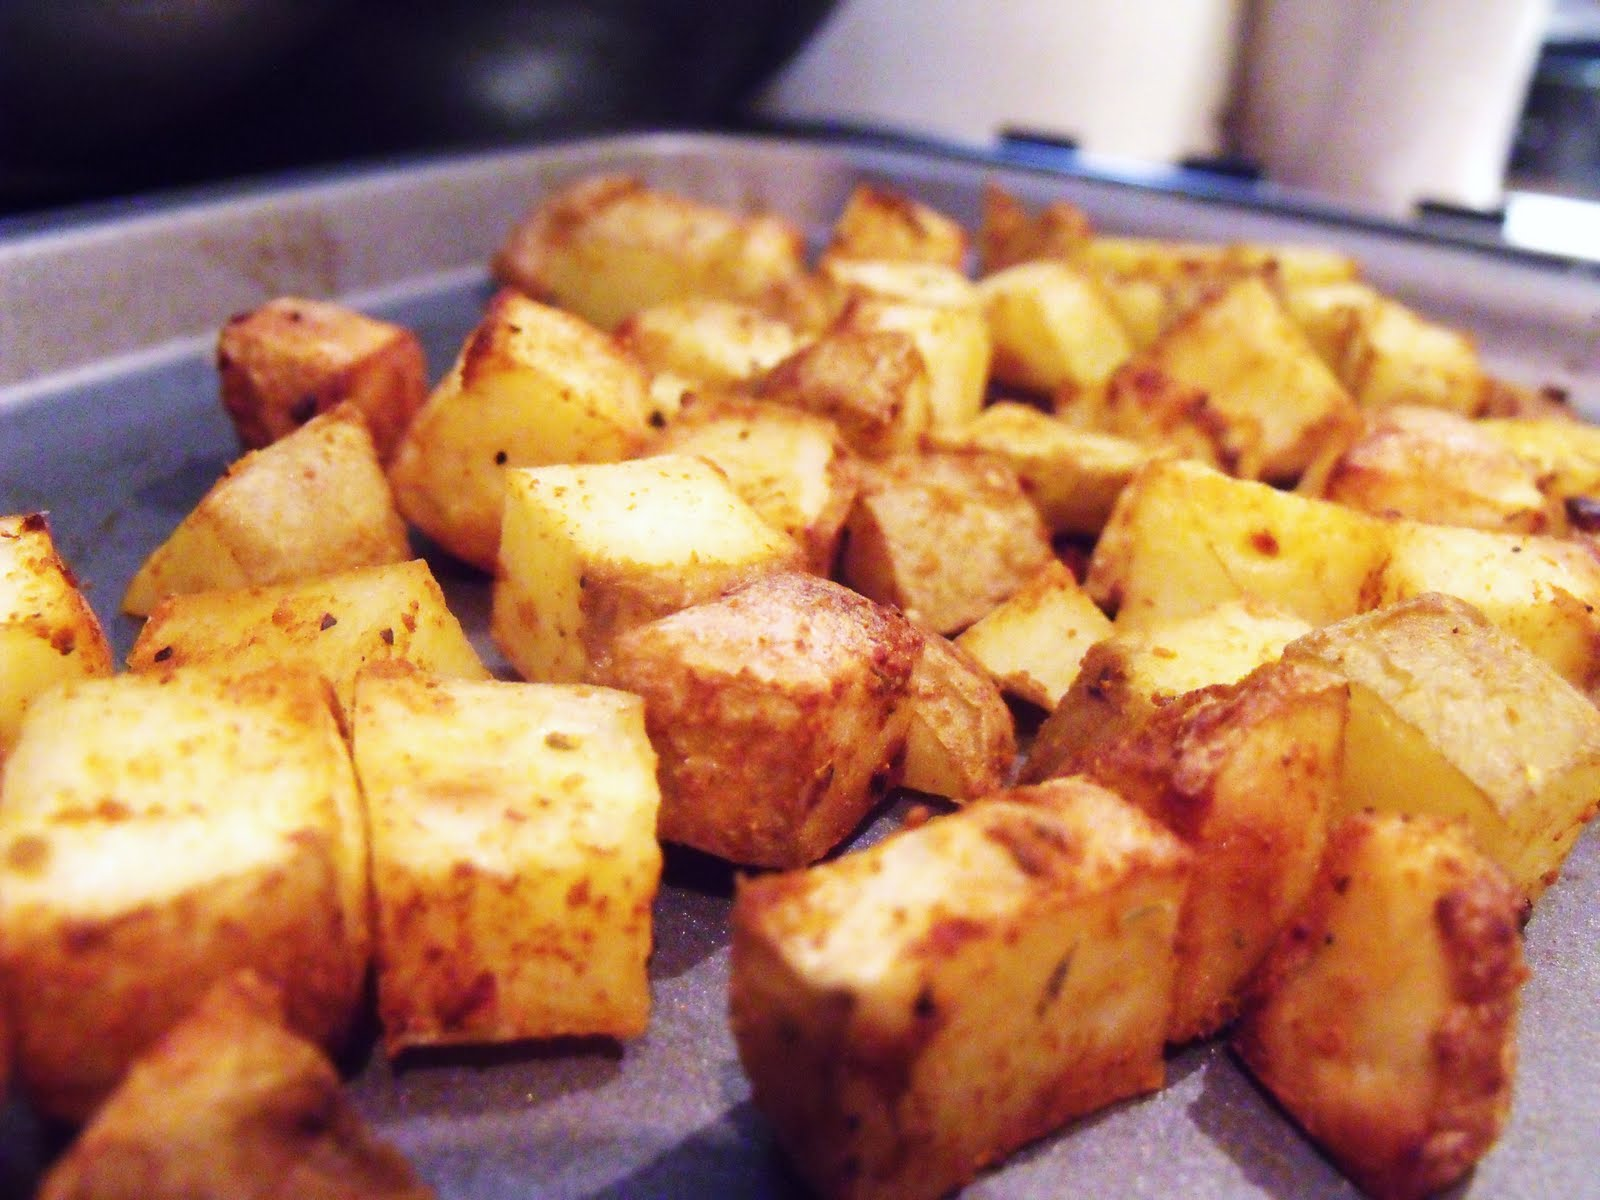 Crispy Roasted Potato Cubes with Garlic